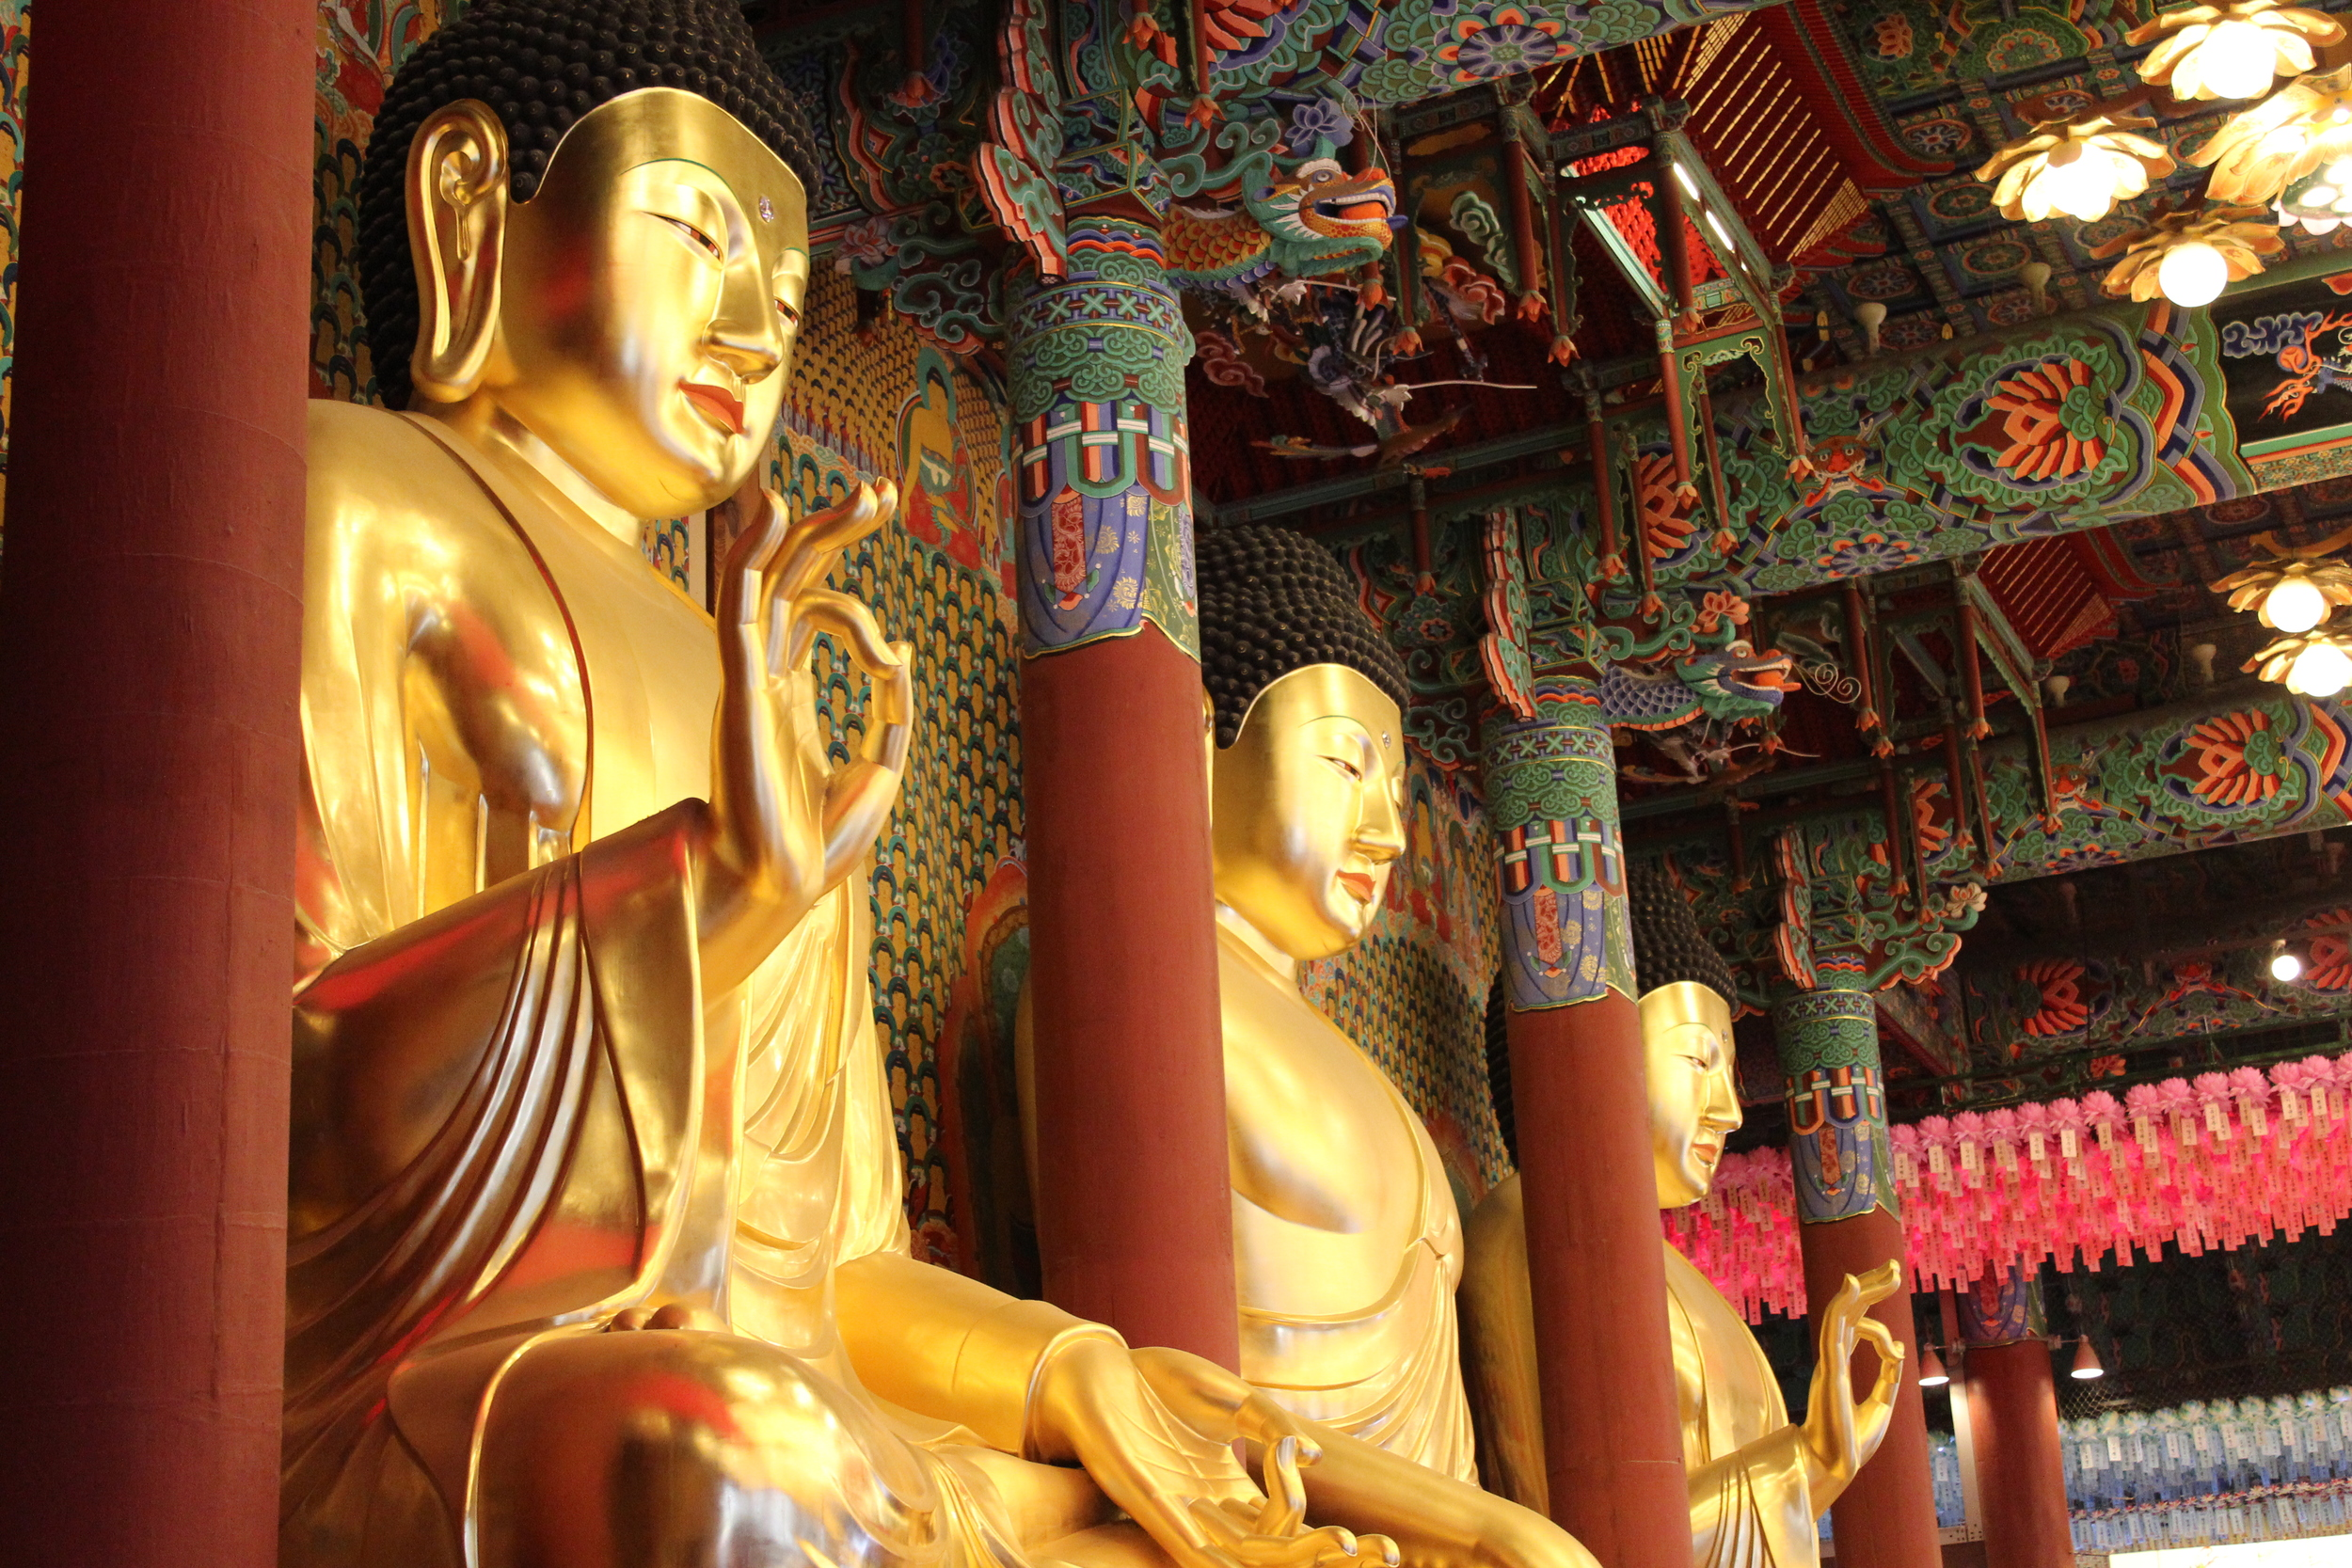 Giant buddhas in the Jogyesa Temple, Seoul